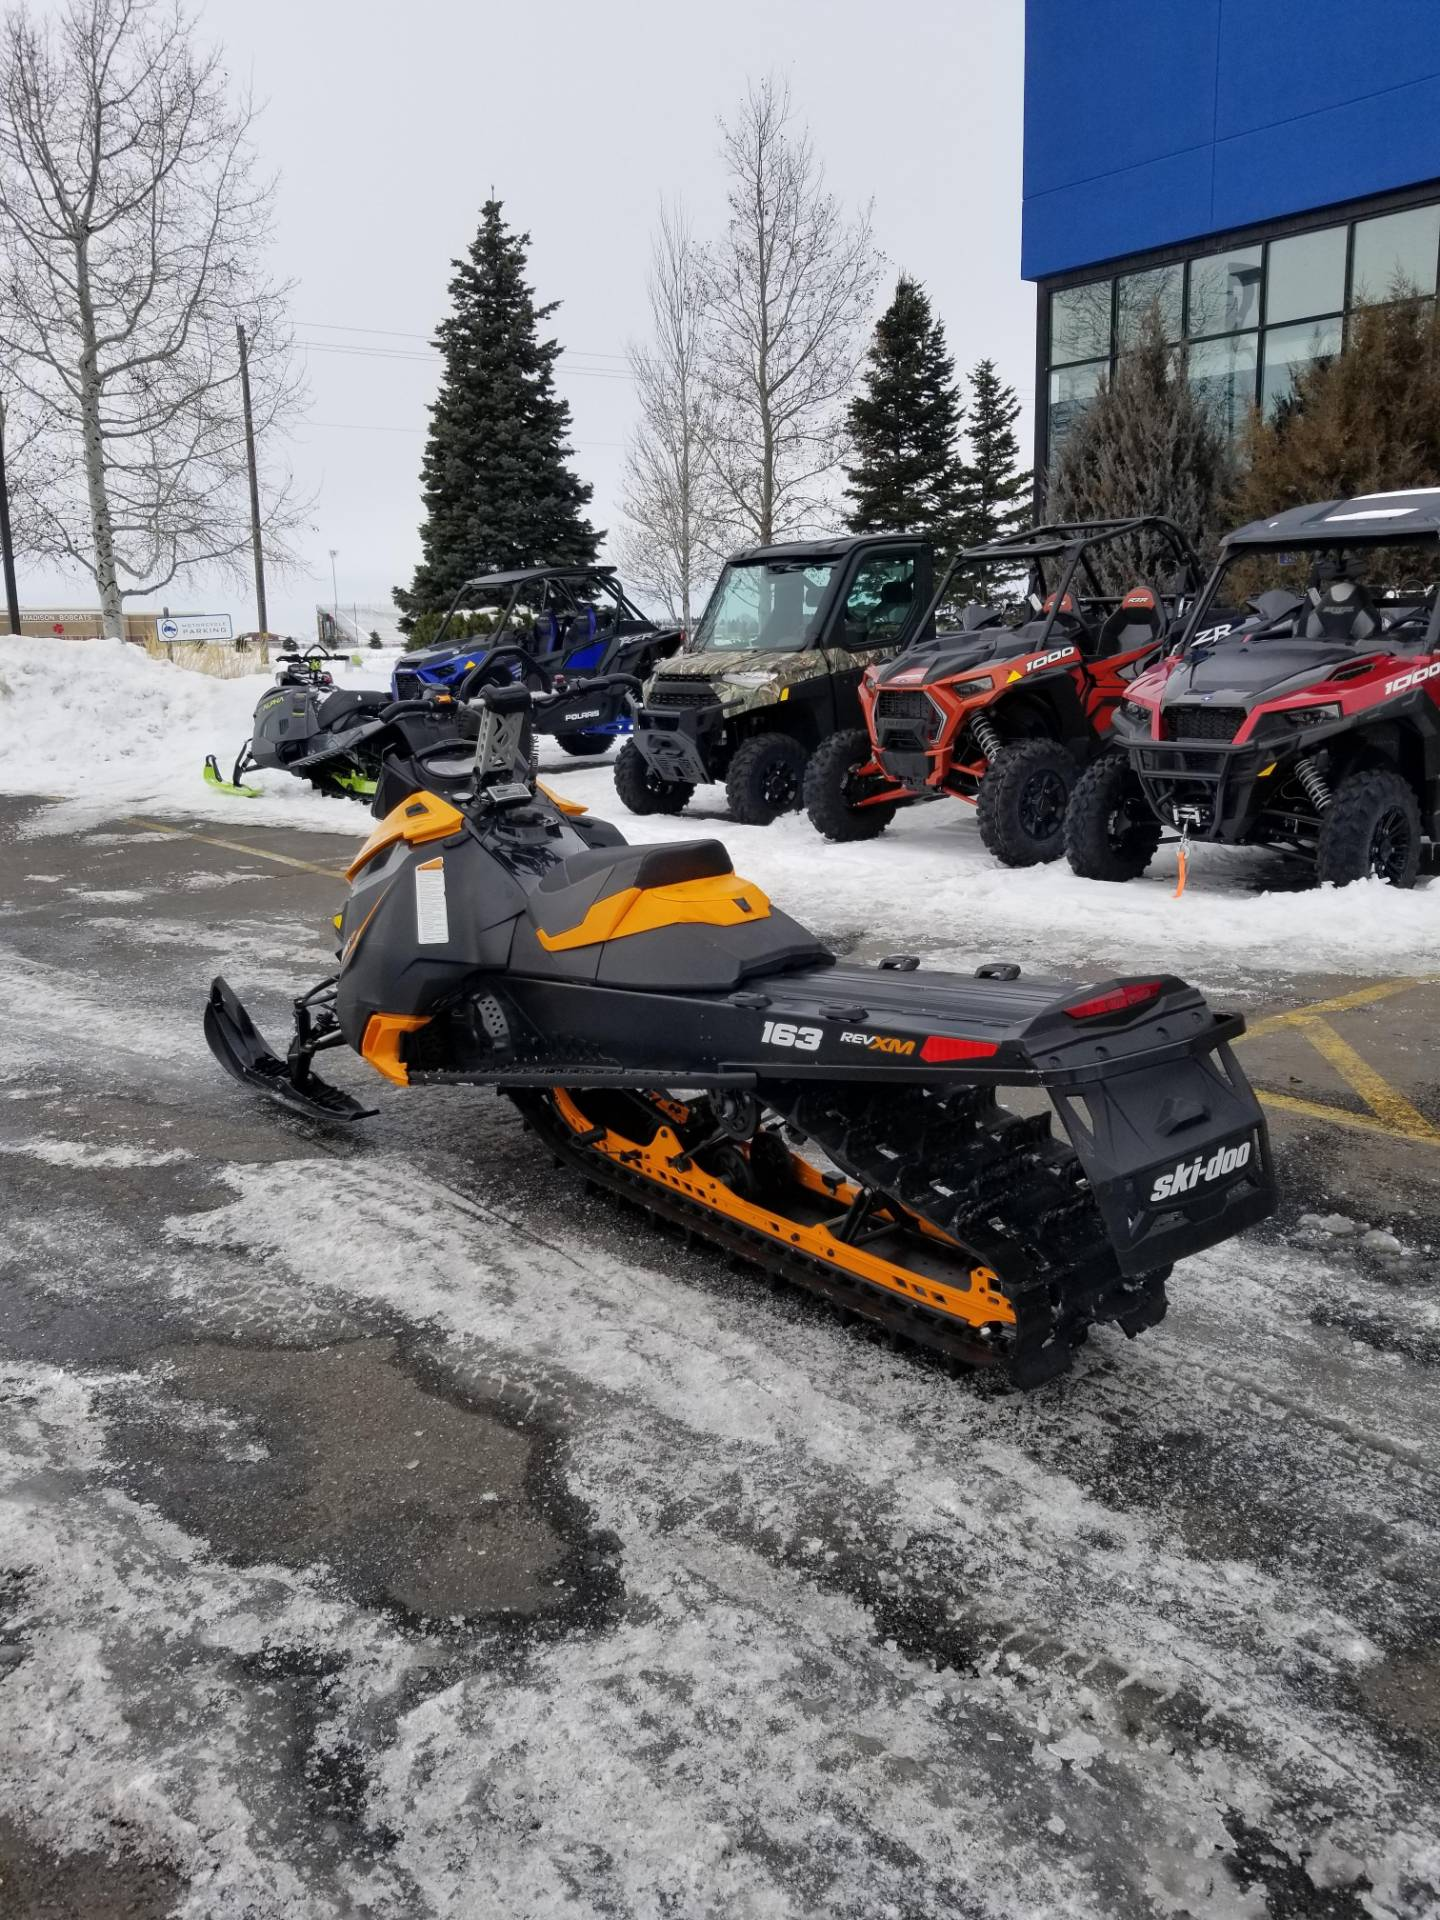 2013 Ski-Doo Summit® SP E-TEC 800R 163 in Rexburg, Idaho - Photo 10